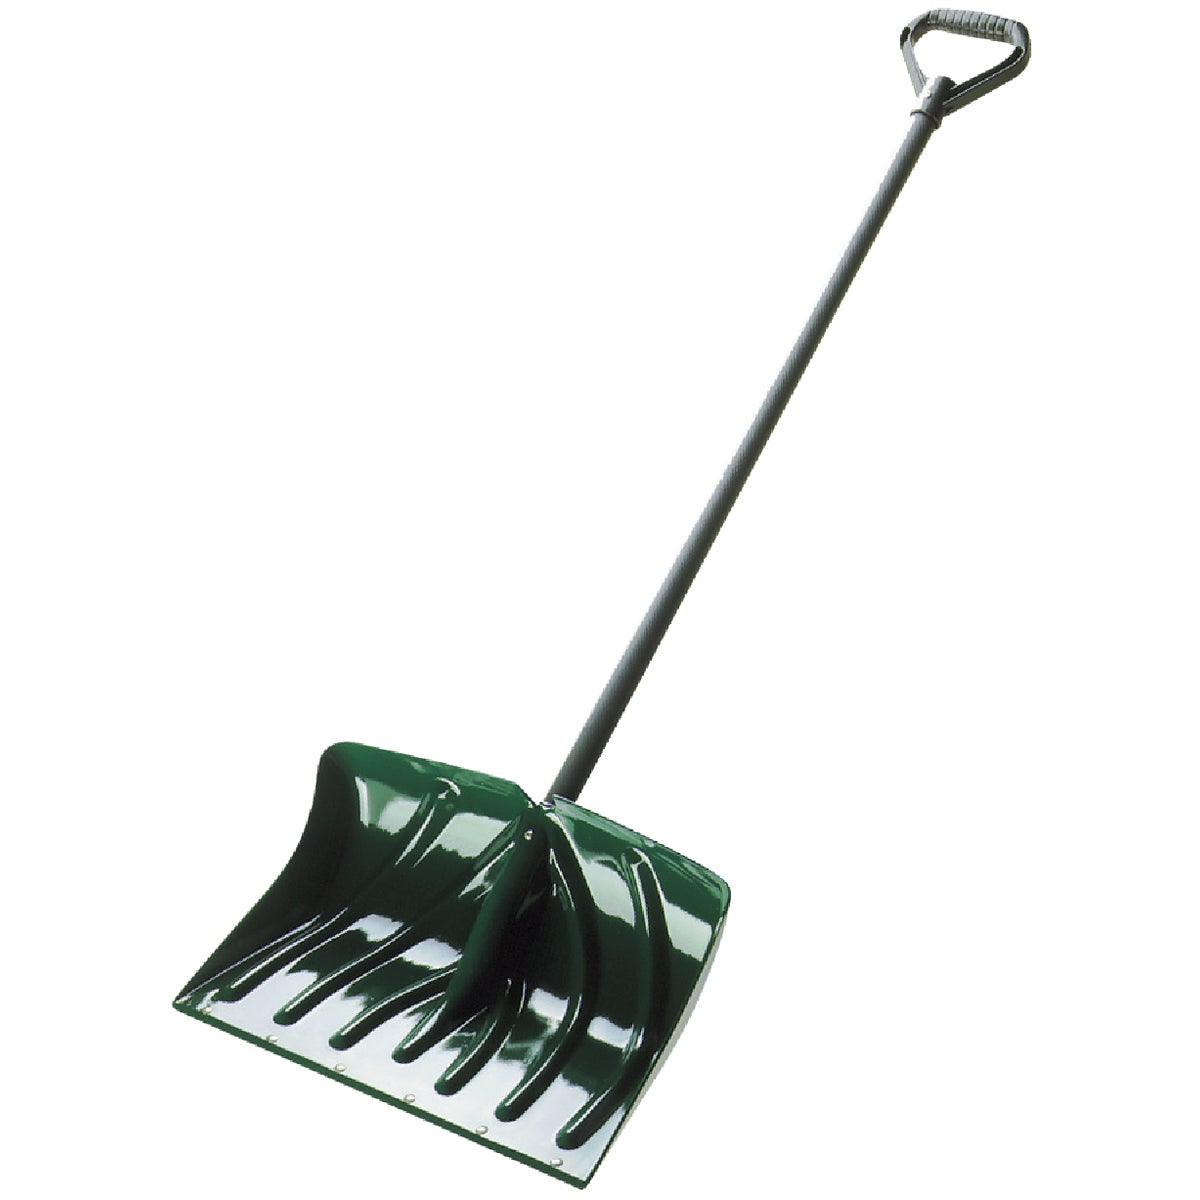 POLY SNOW SHOVEL - SC1350 by Suncast Corporation